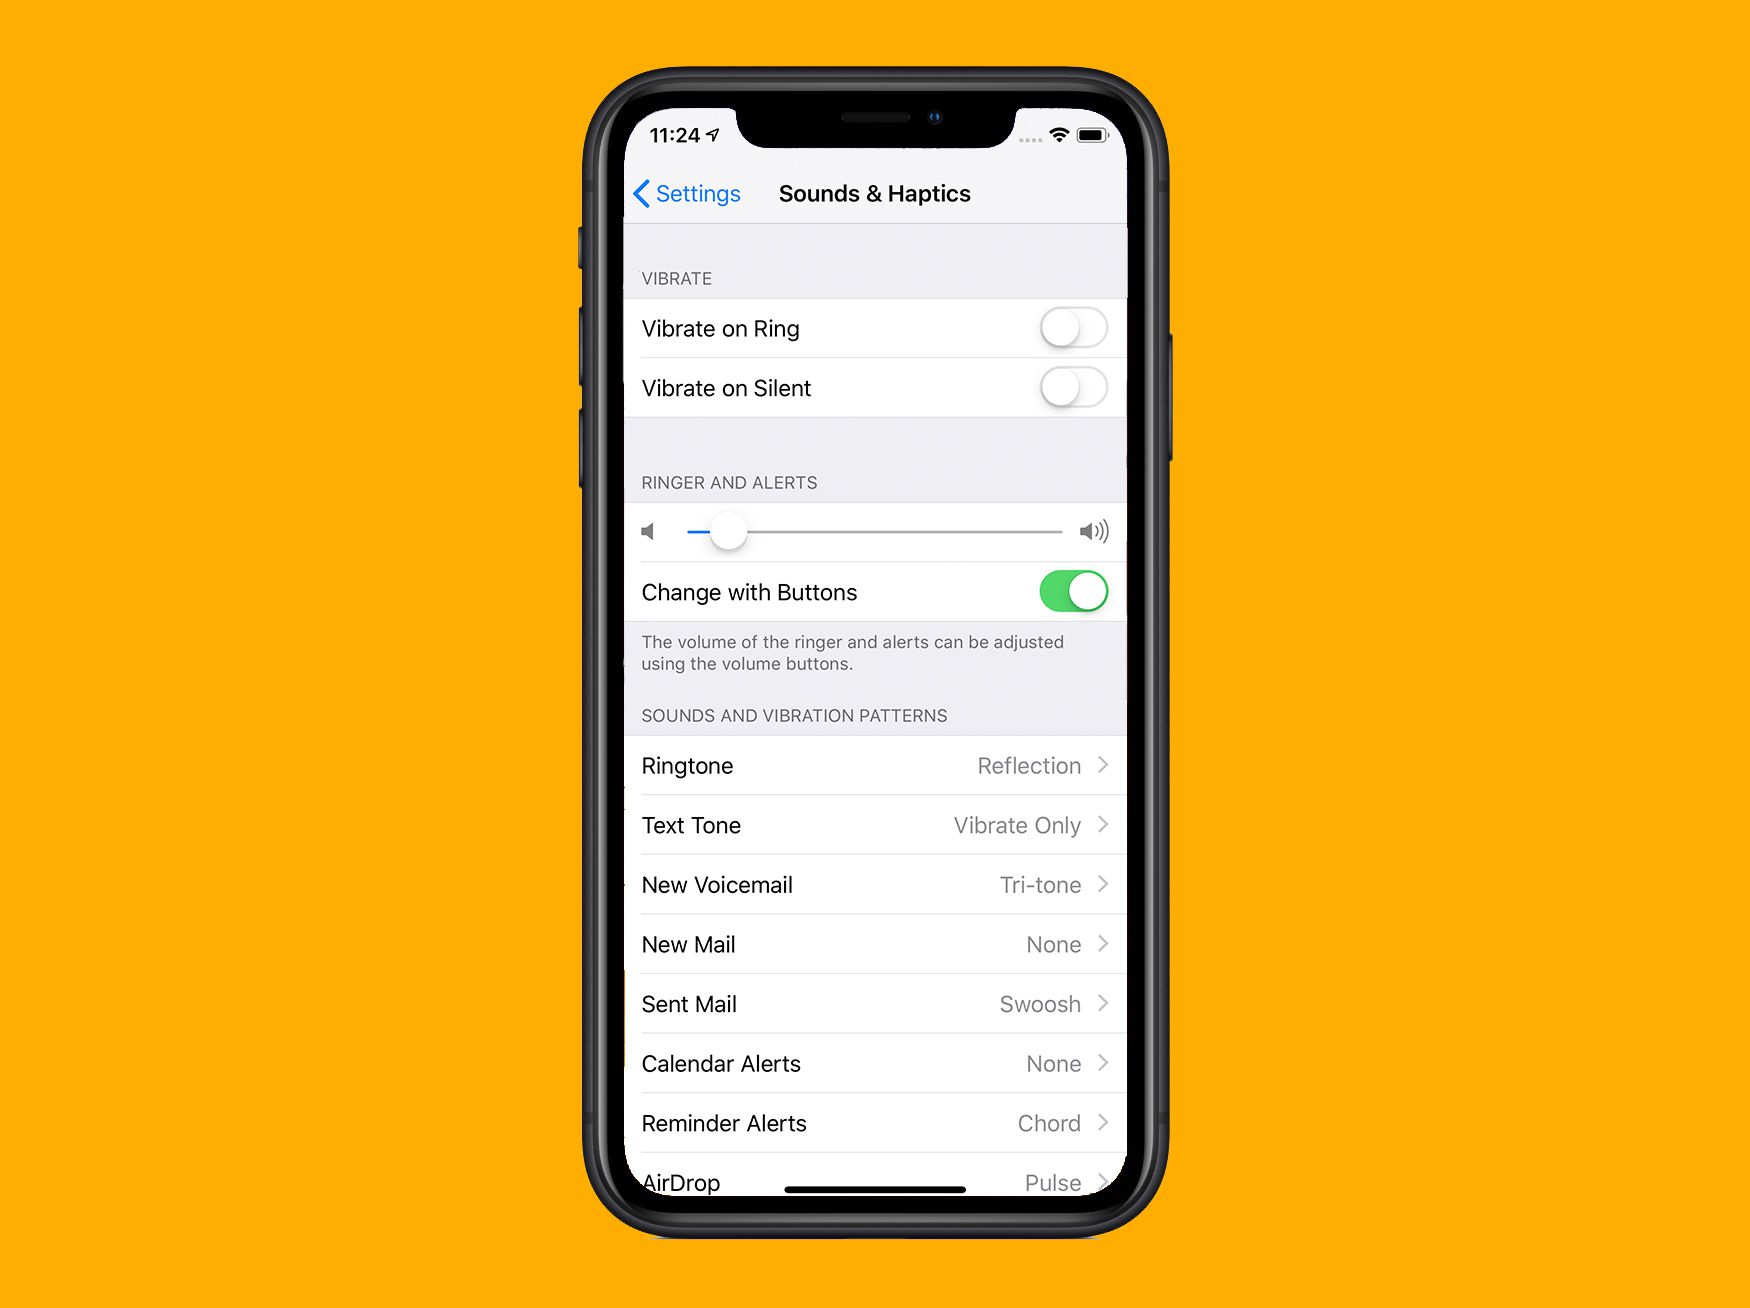 iOS Sounds & Haptics settings screen on iPhone X